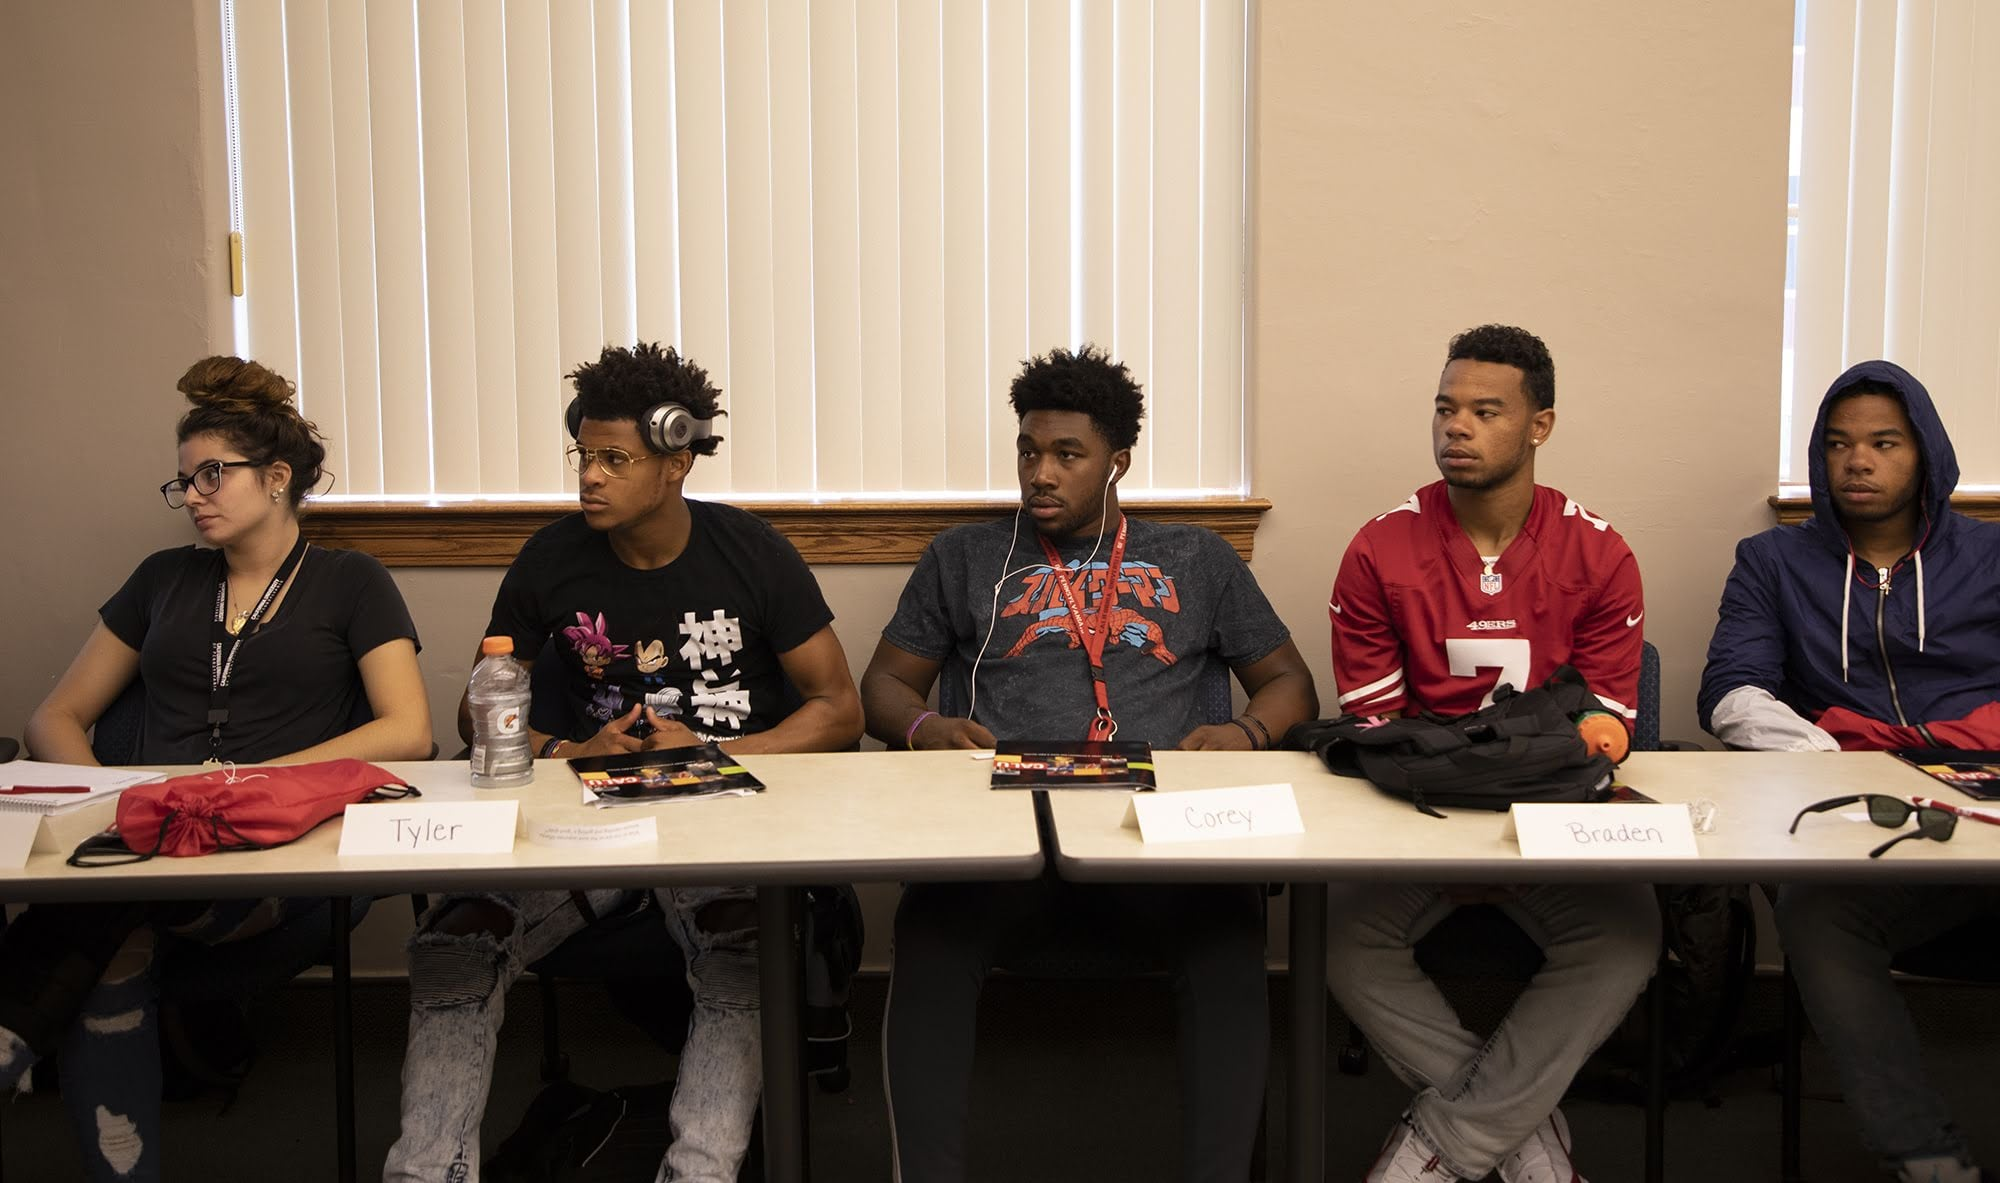 From left to right: Erica Thorniley, Tyler Walker, Corey Thomas, Braden Simpson and Brycen Simpson watch a presentation at California University of Pennsylvania during the Summer Success Academy. The pilot program is meant to help upcoming freshman who seek extra college preparation prior to classes beginning in the fall semester.